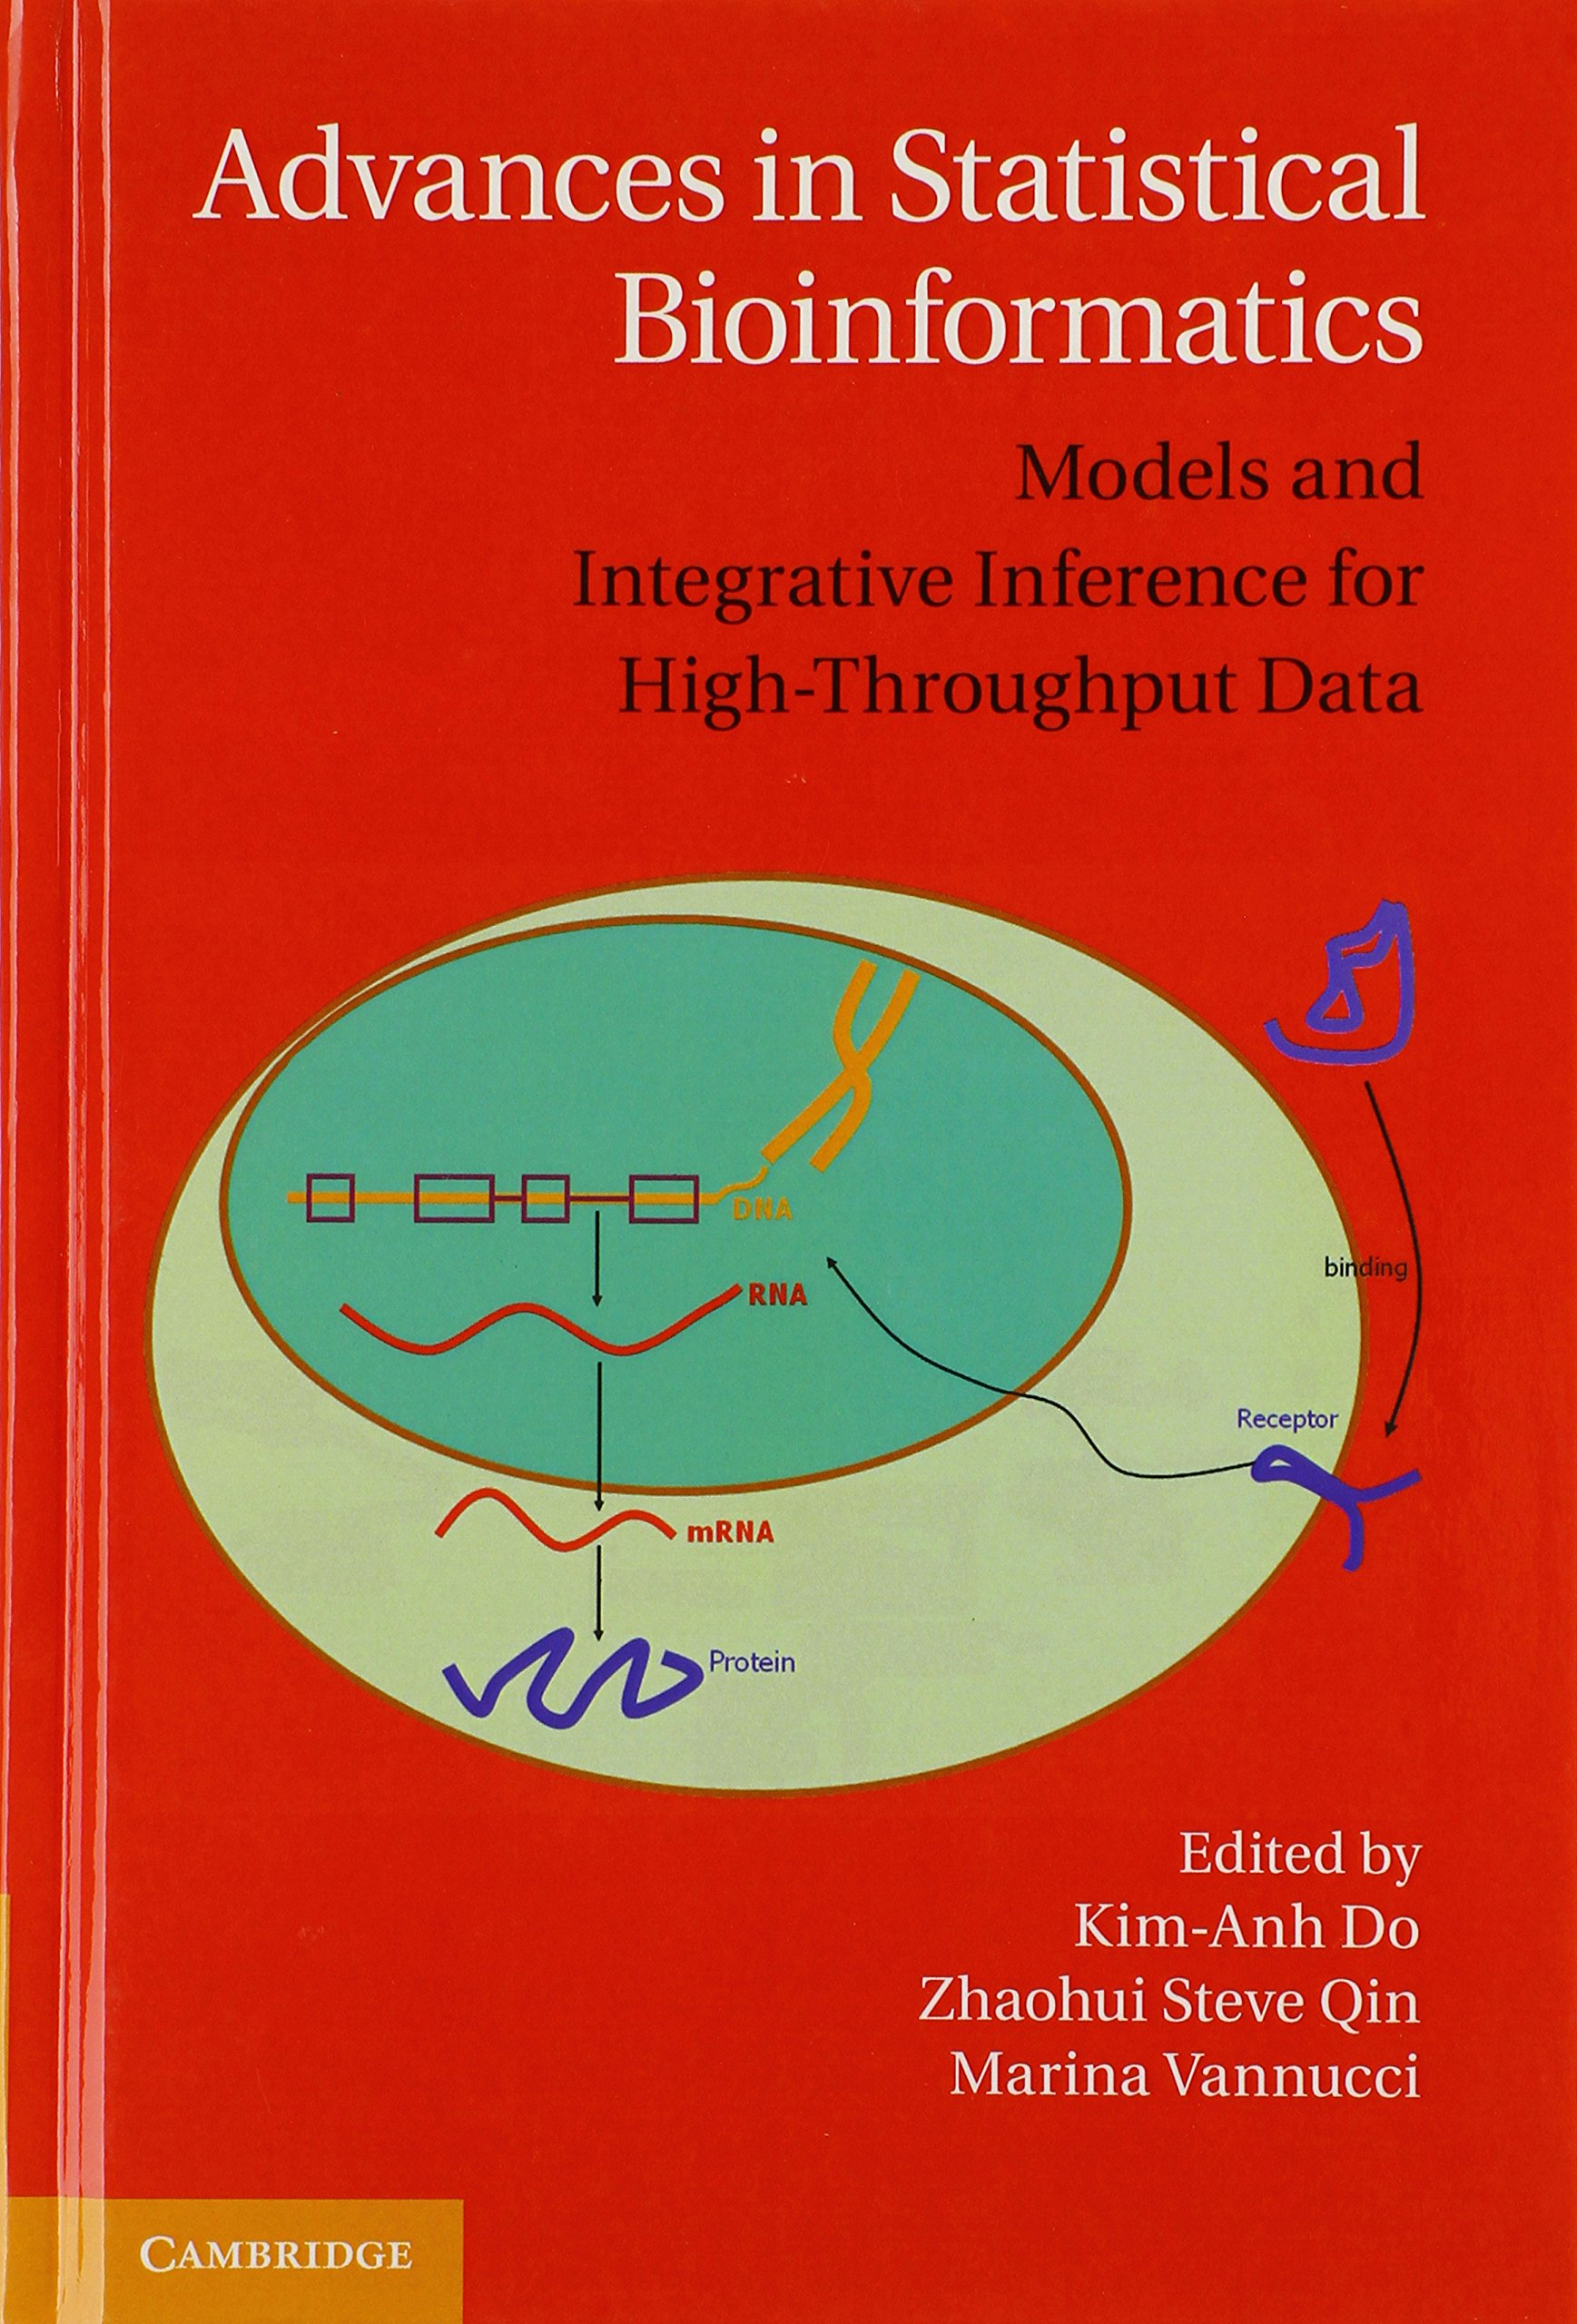 Advances in Statistical Bioinformatics: Models and Integrative Inference for High-Throughput Data